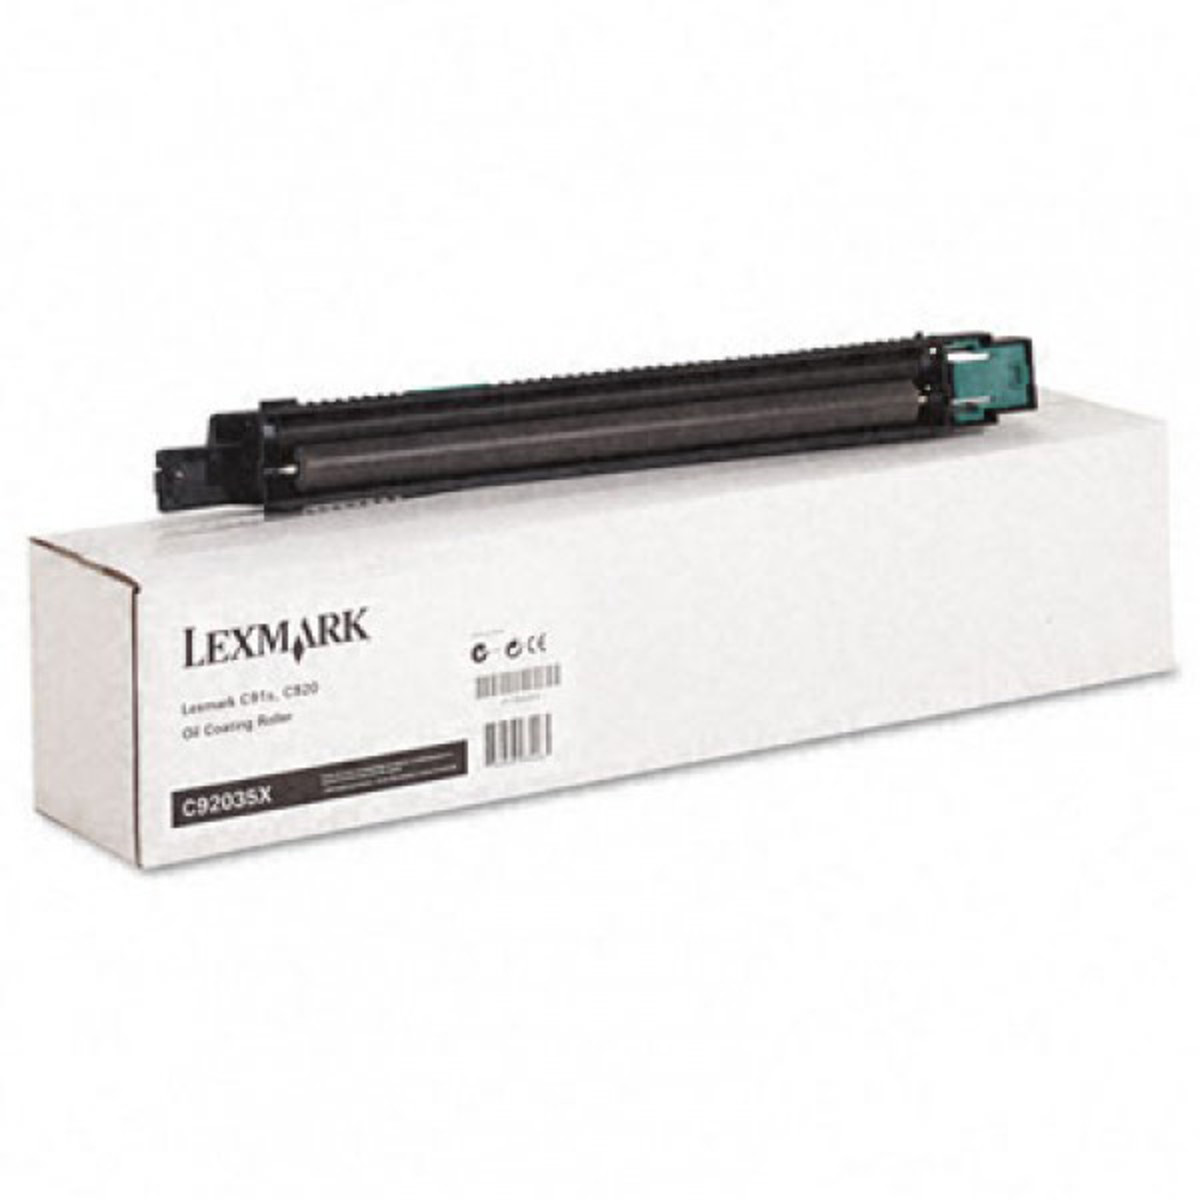 Lexmark C910 / C912 Oil Coating Roller